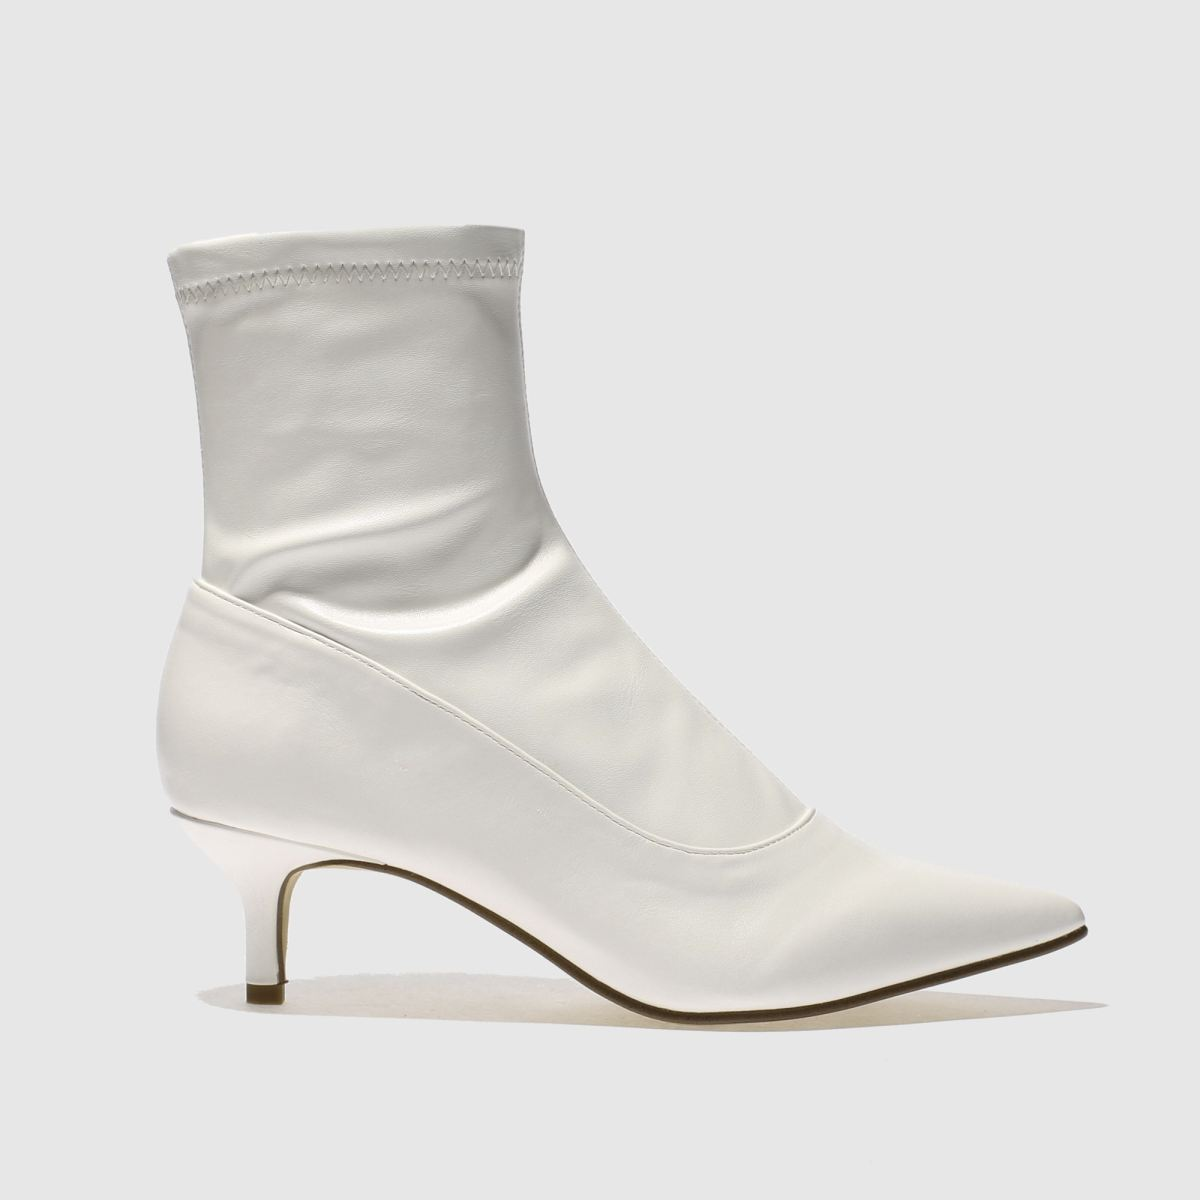 Schuh White Strike A Pose Boots